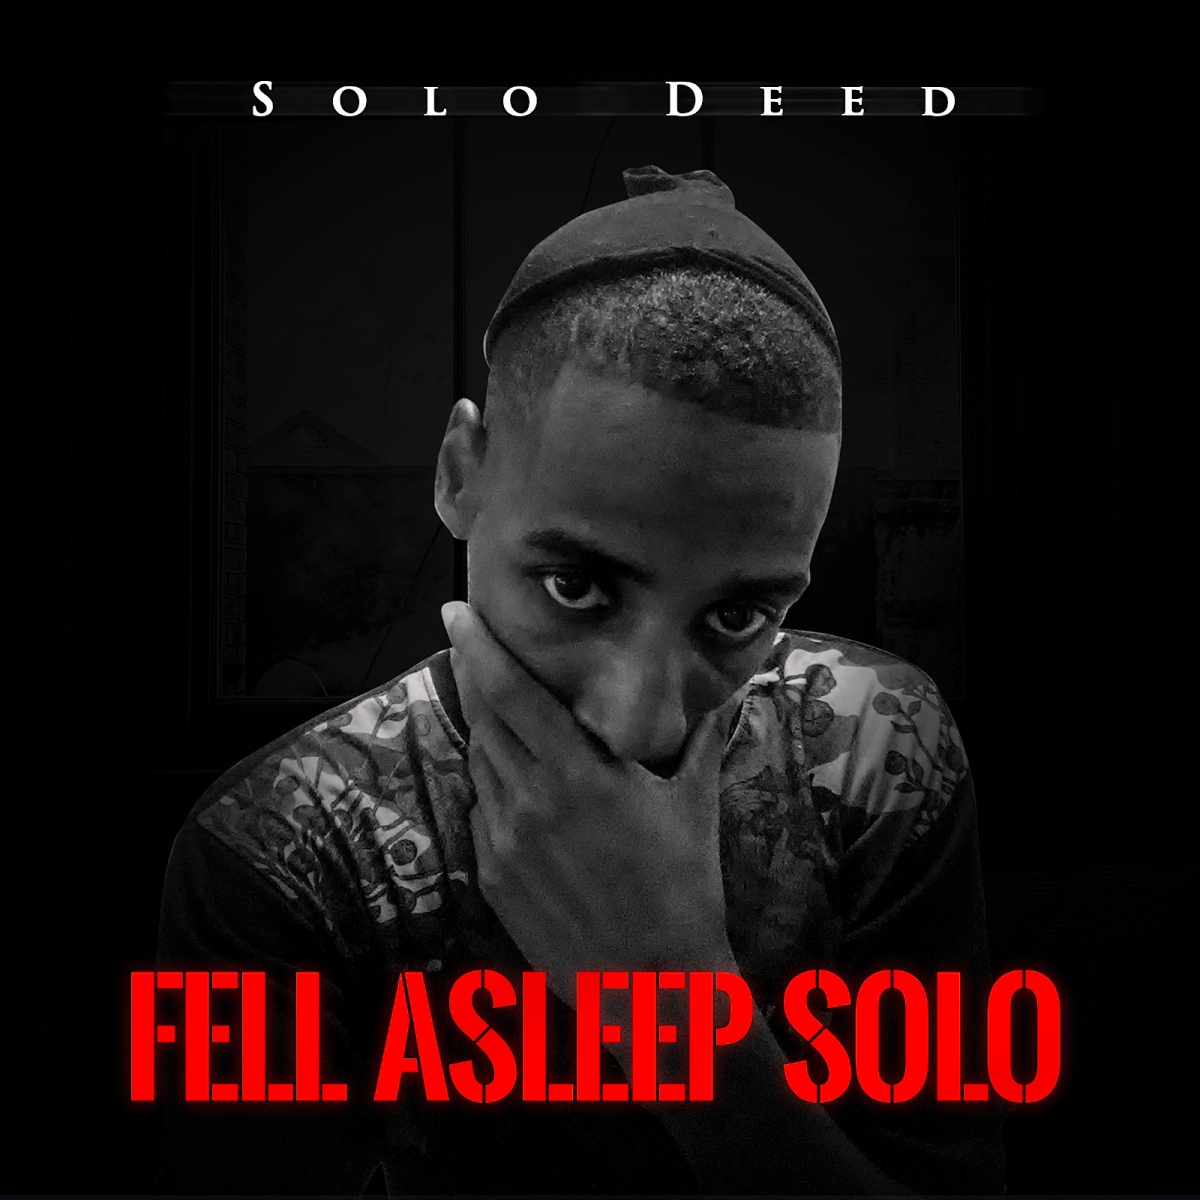 Brief Q & A with Newcomer Solo Deed